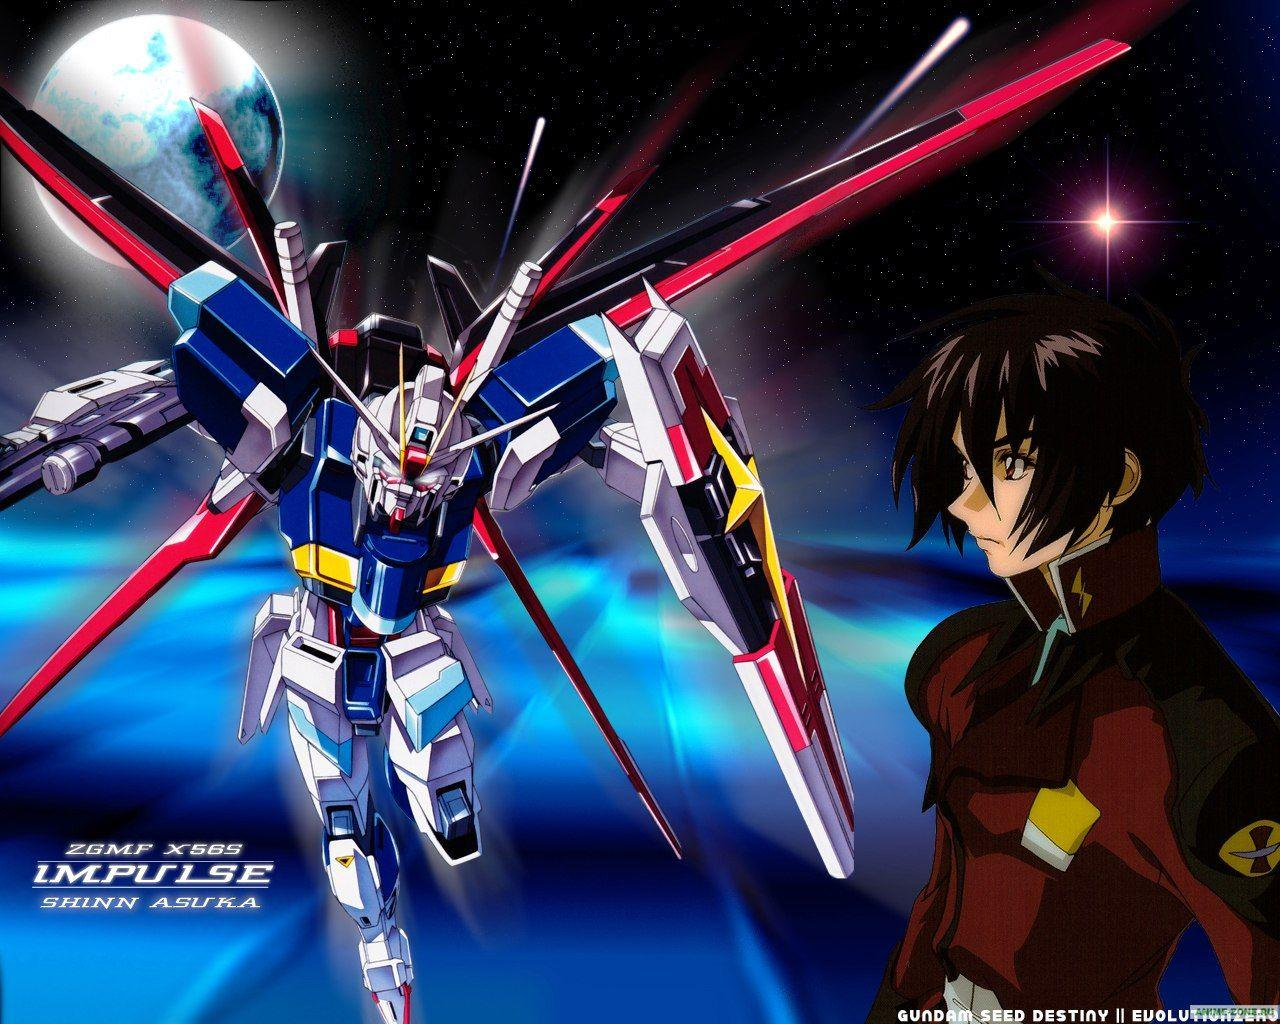 1280x1024 - Mobile Suit Gundam Seed Destiny Wallpapers 12